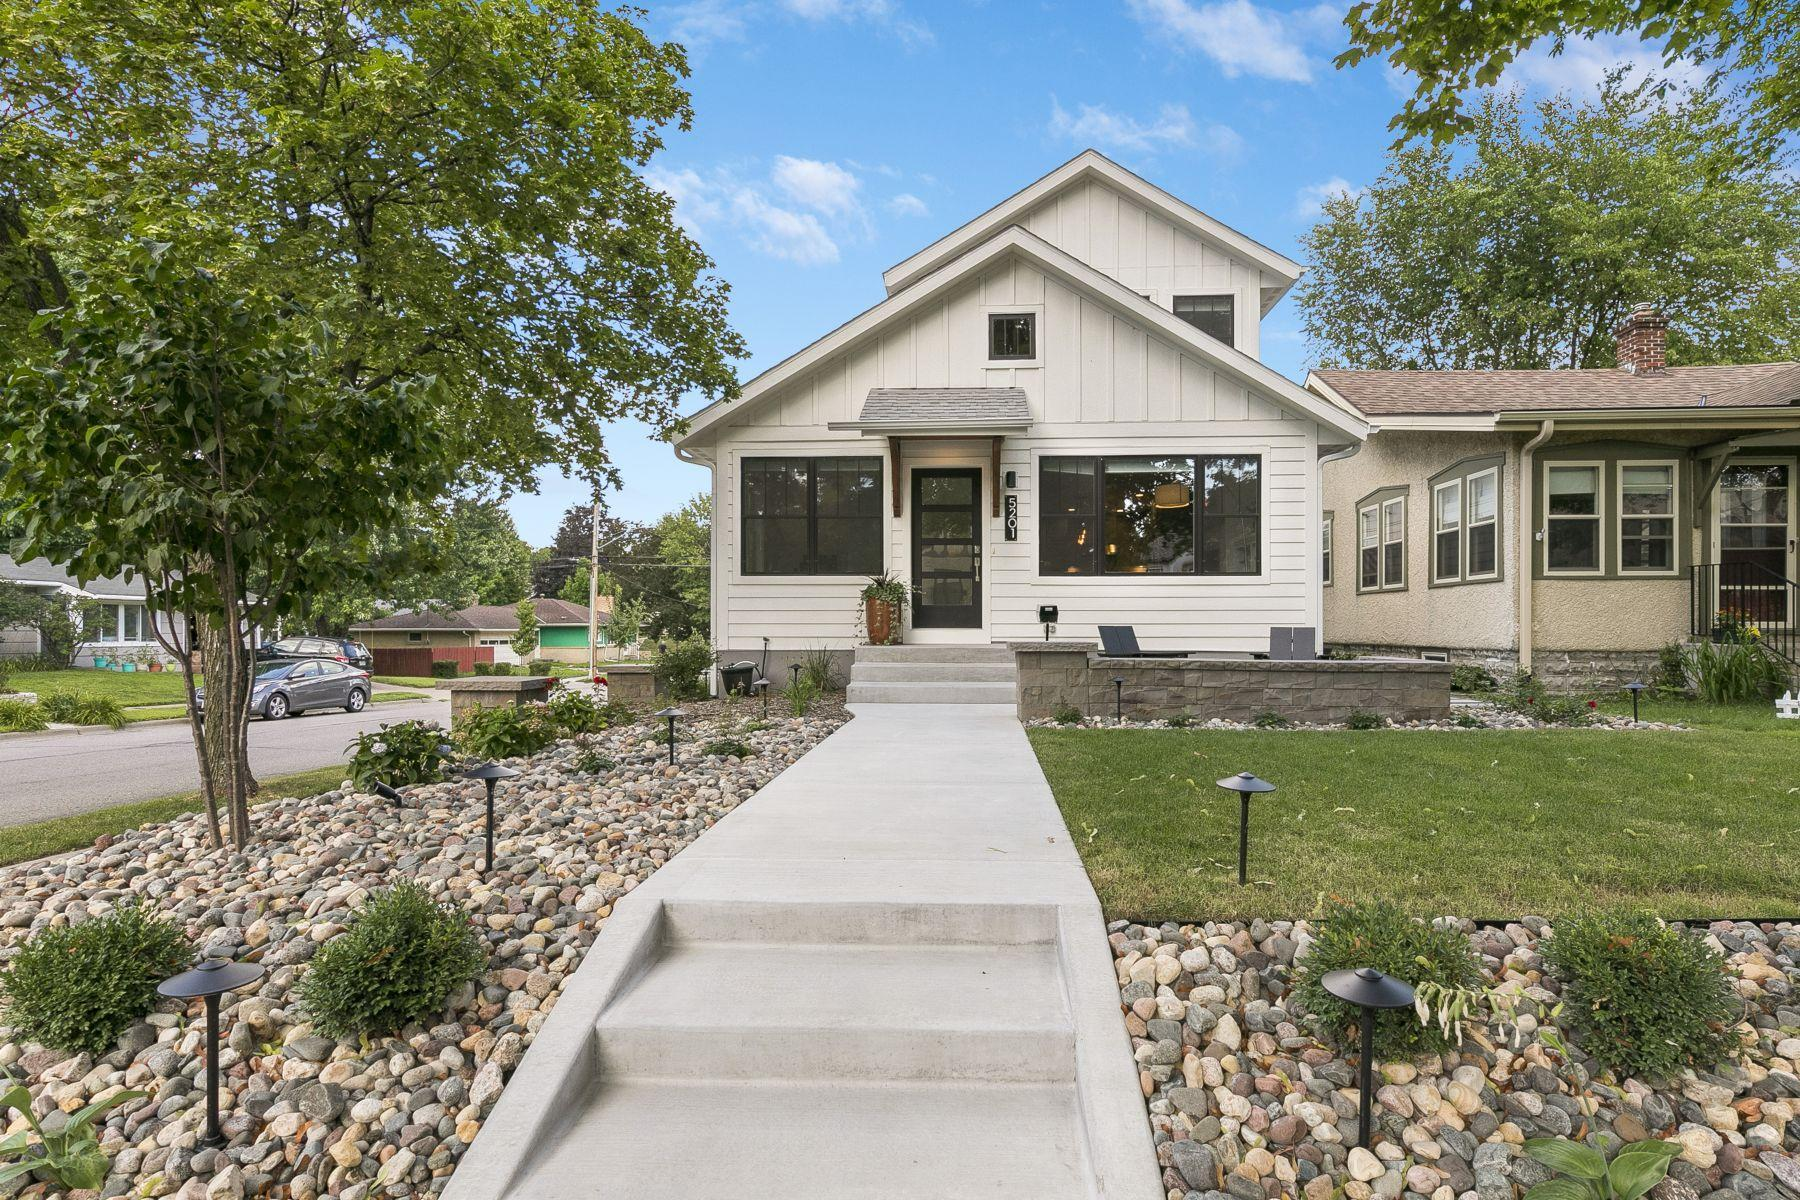 5201 11th Avenue S Property Photo - Minneapolis, MN real estate listing